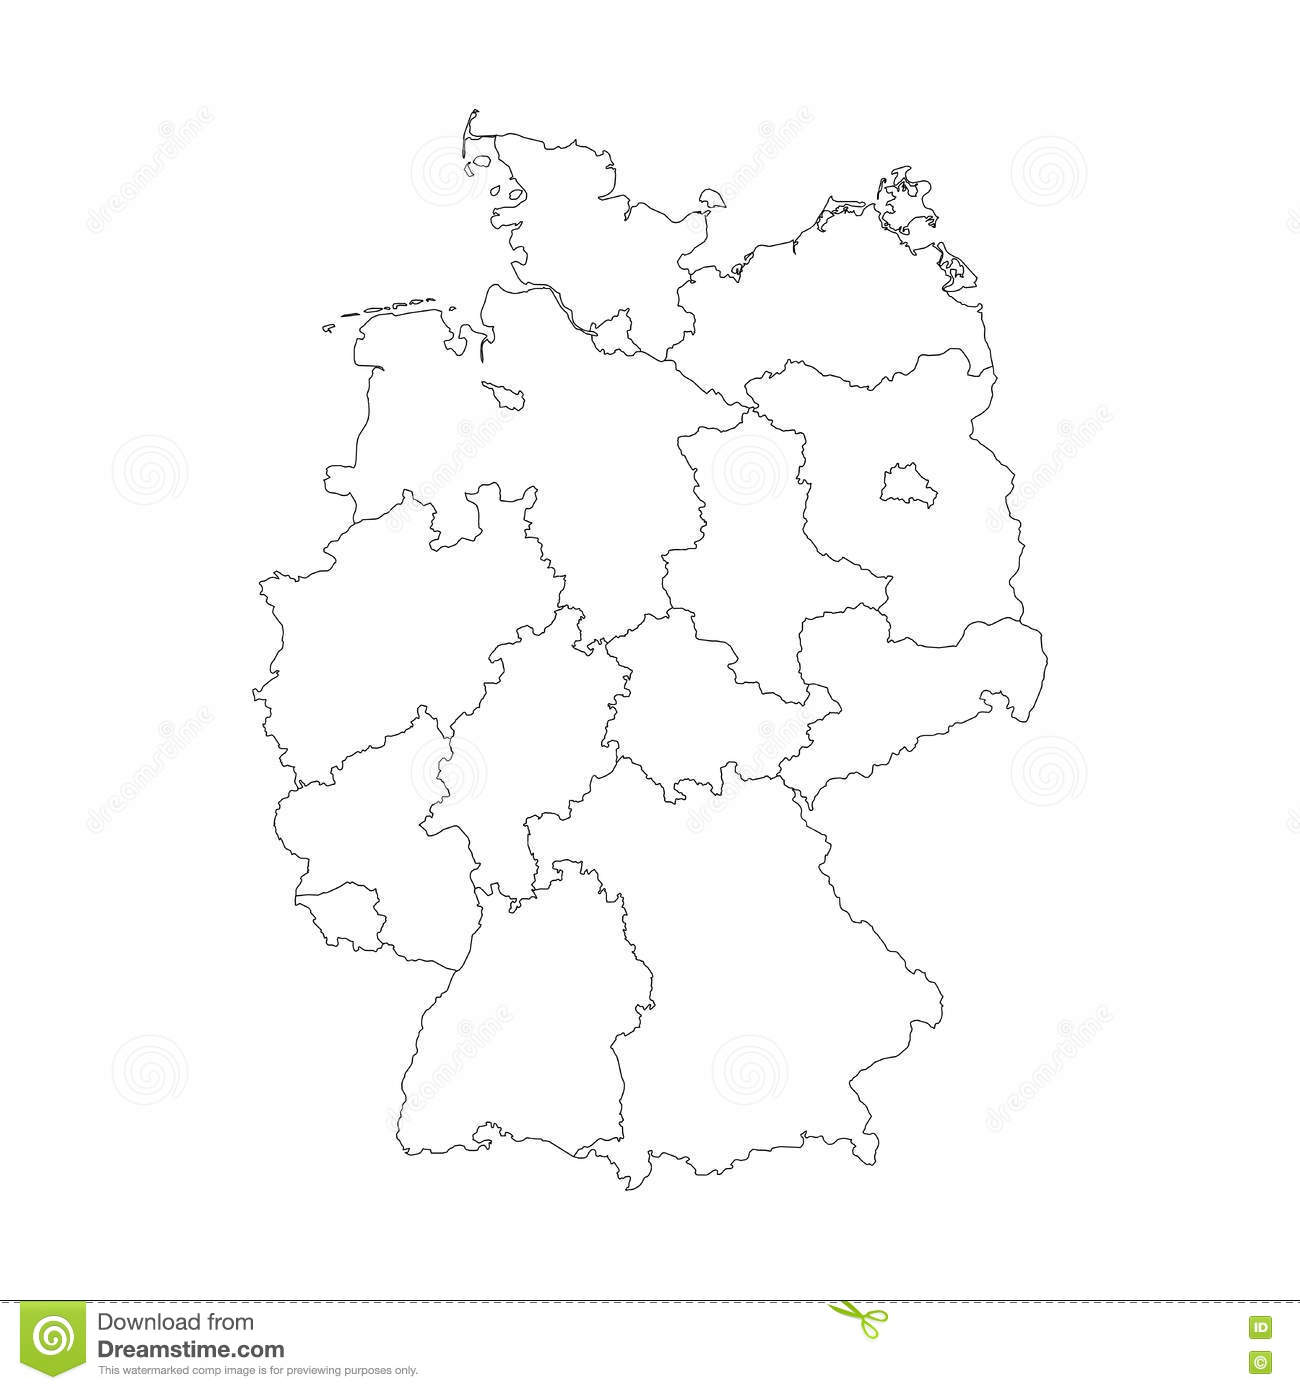 Map Of Germany Divided To Federal States Stock Vector Image - Germany map federal states